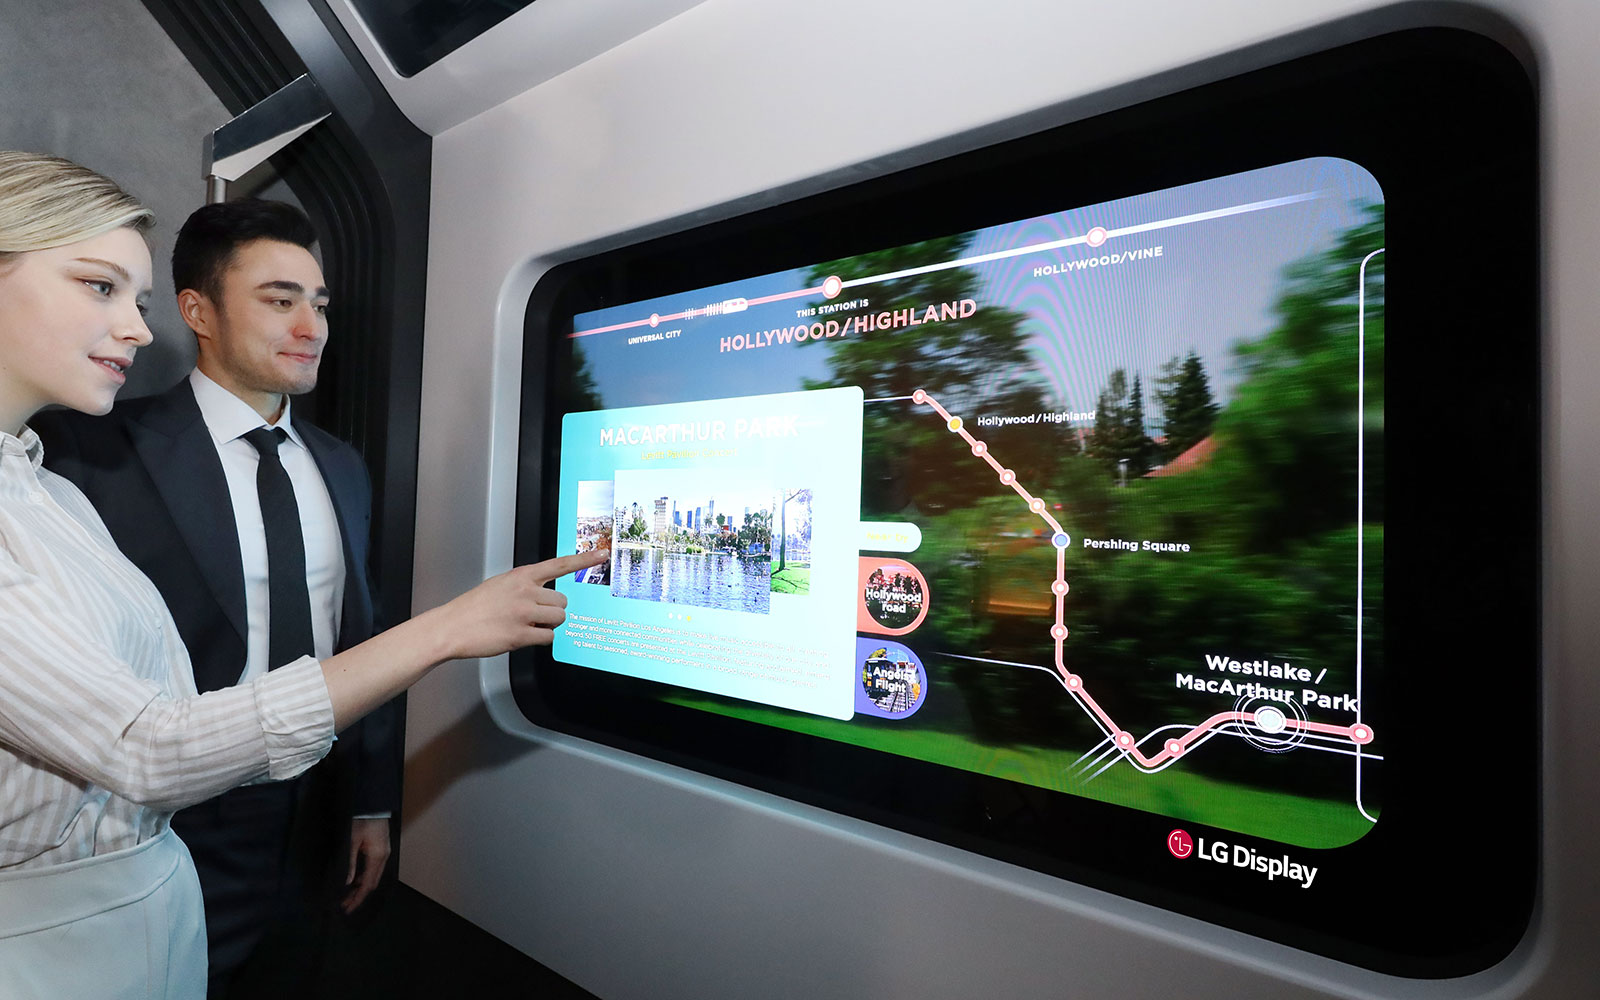 LG Display will additionally demonstrate how the company's 55-inch Transparent OLED display can be applied to a subway train in a Metro Zone. While on board a virtual train carriage, passengers may look outside through the transparent display that has replaced a traditional window. Its high transparency enabled by OLED means passengers can still enjoy the passing scenery while viewing clear information such as subway line maps, weather information, and other news.